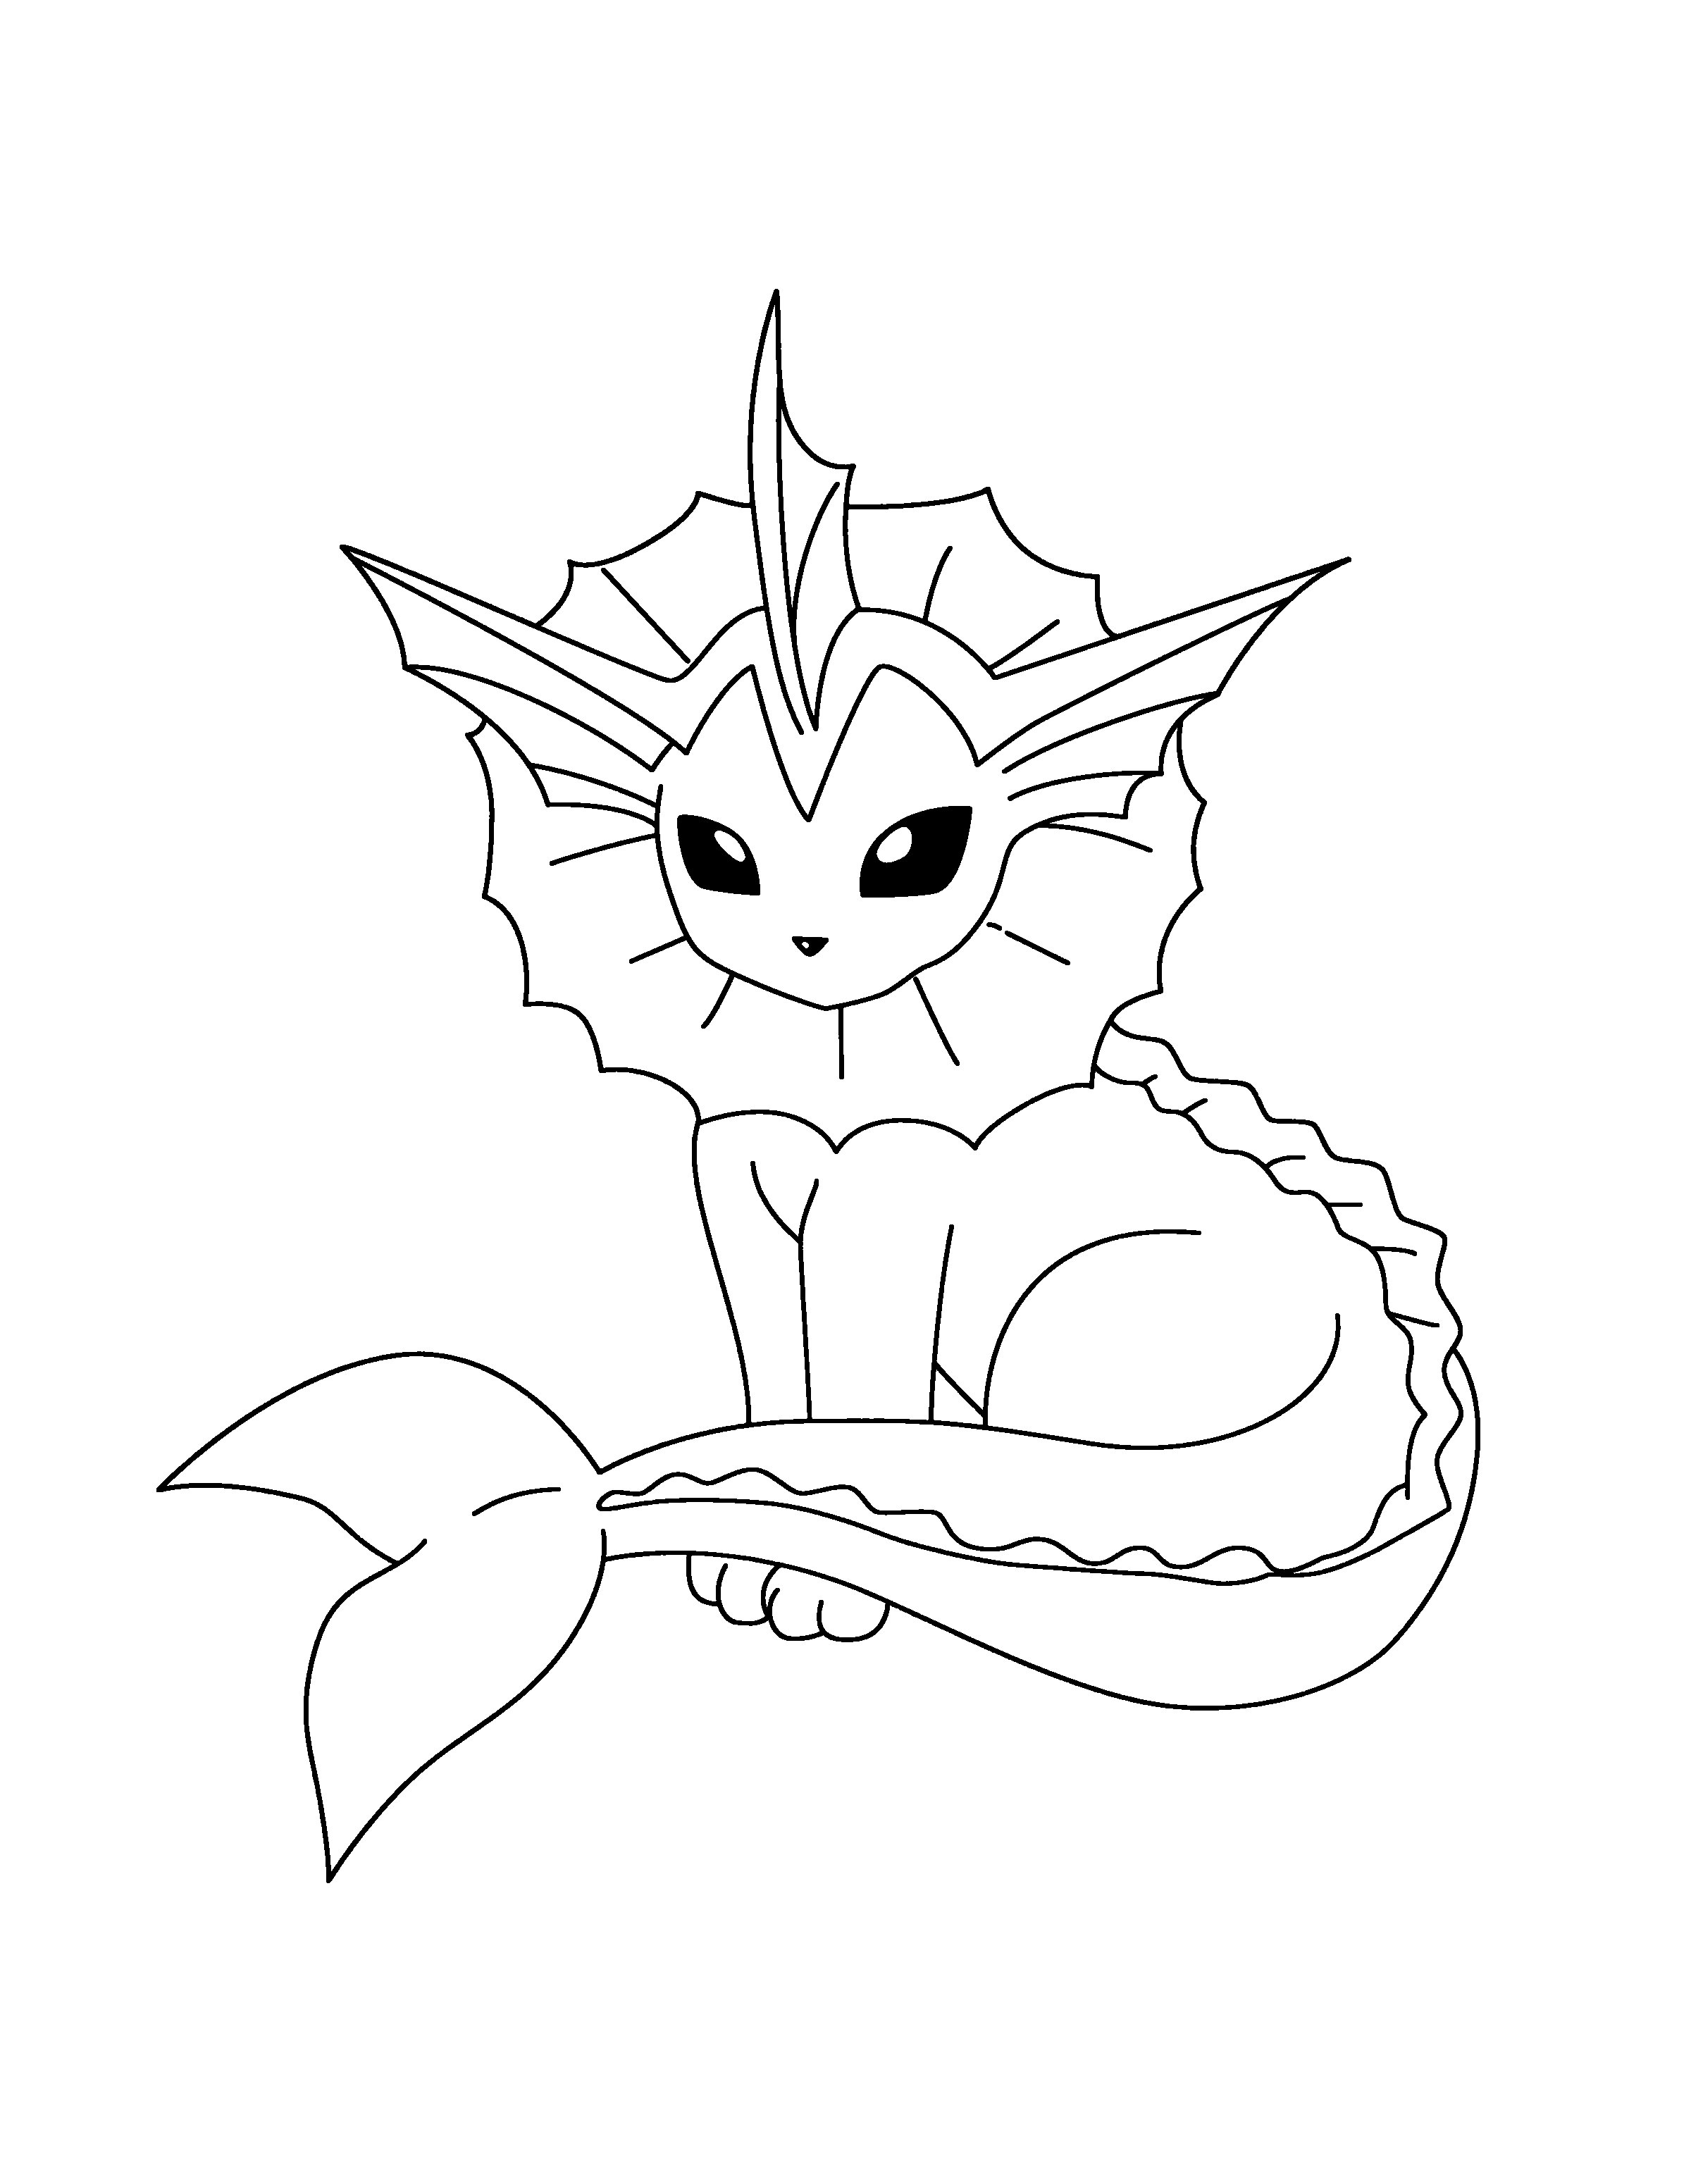 25 Vaporeon Coloring Page Compilation | FREE COLORING PAGES - Part 2